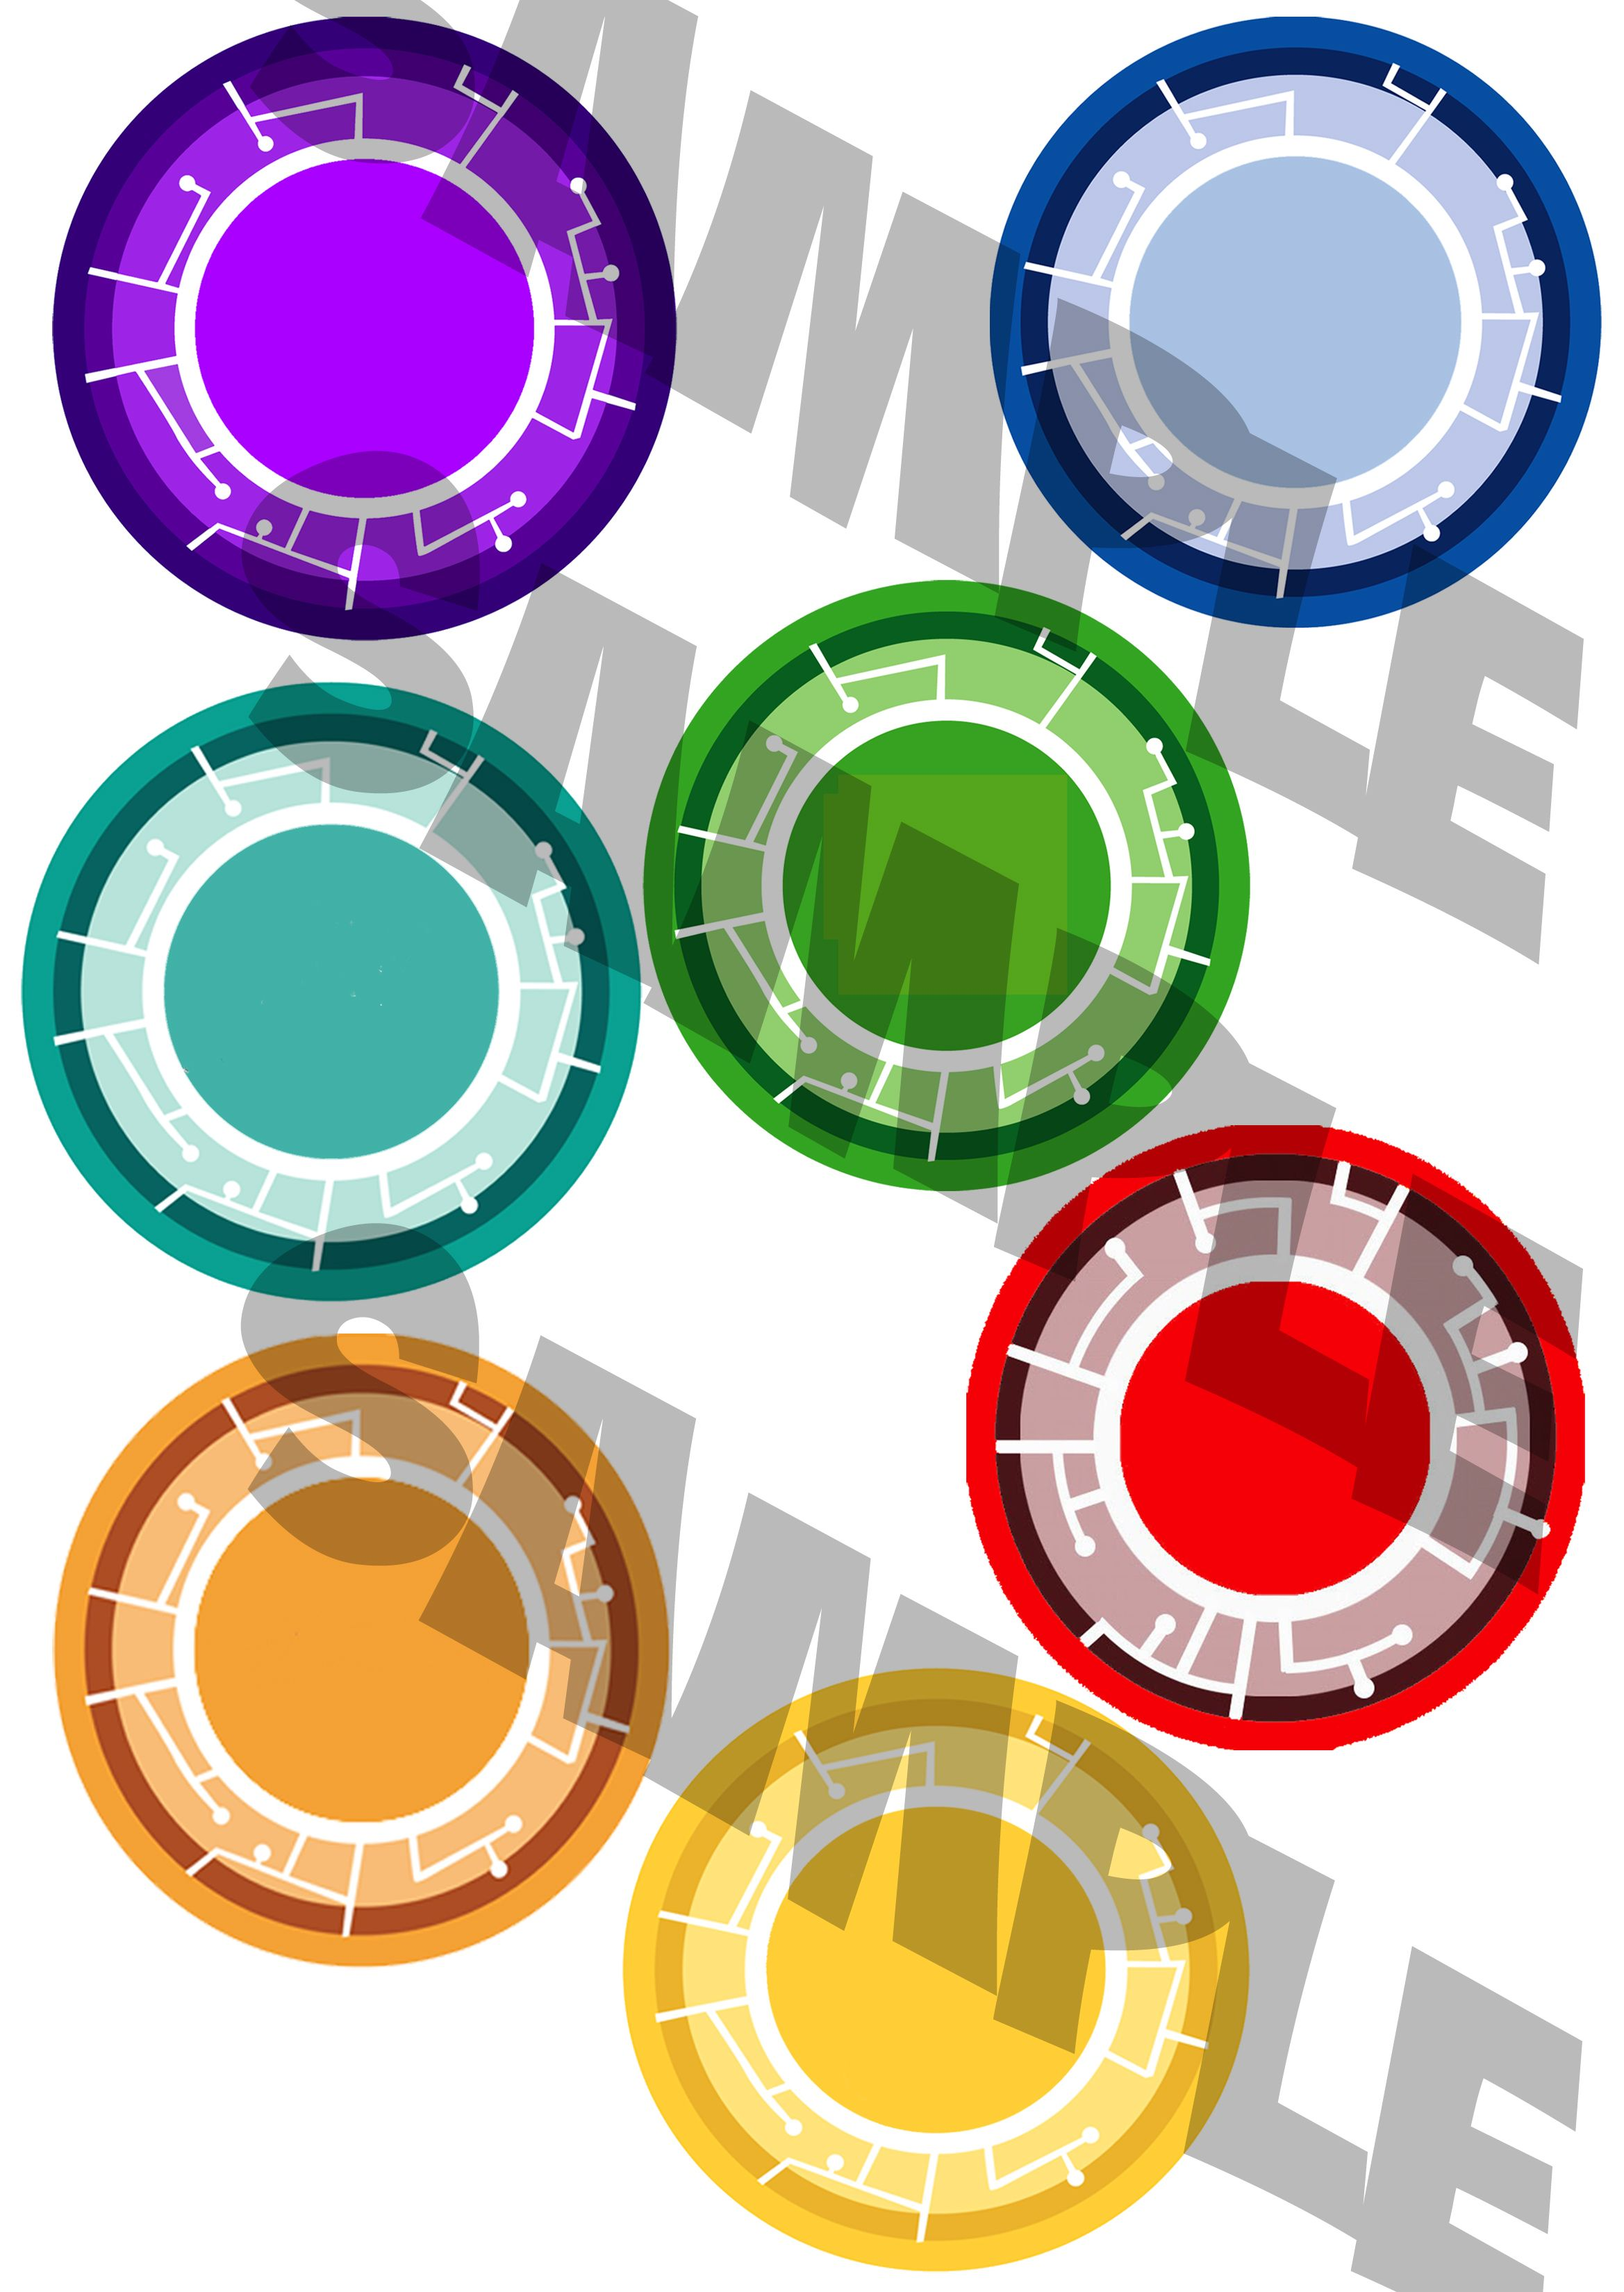 Wild Kratts Creature Power Disks Used For Birthday Banners Posters Digital Or Print Copies Available For Purchase Birthday Banner Wild Kratts Party Themes